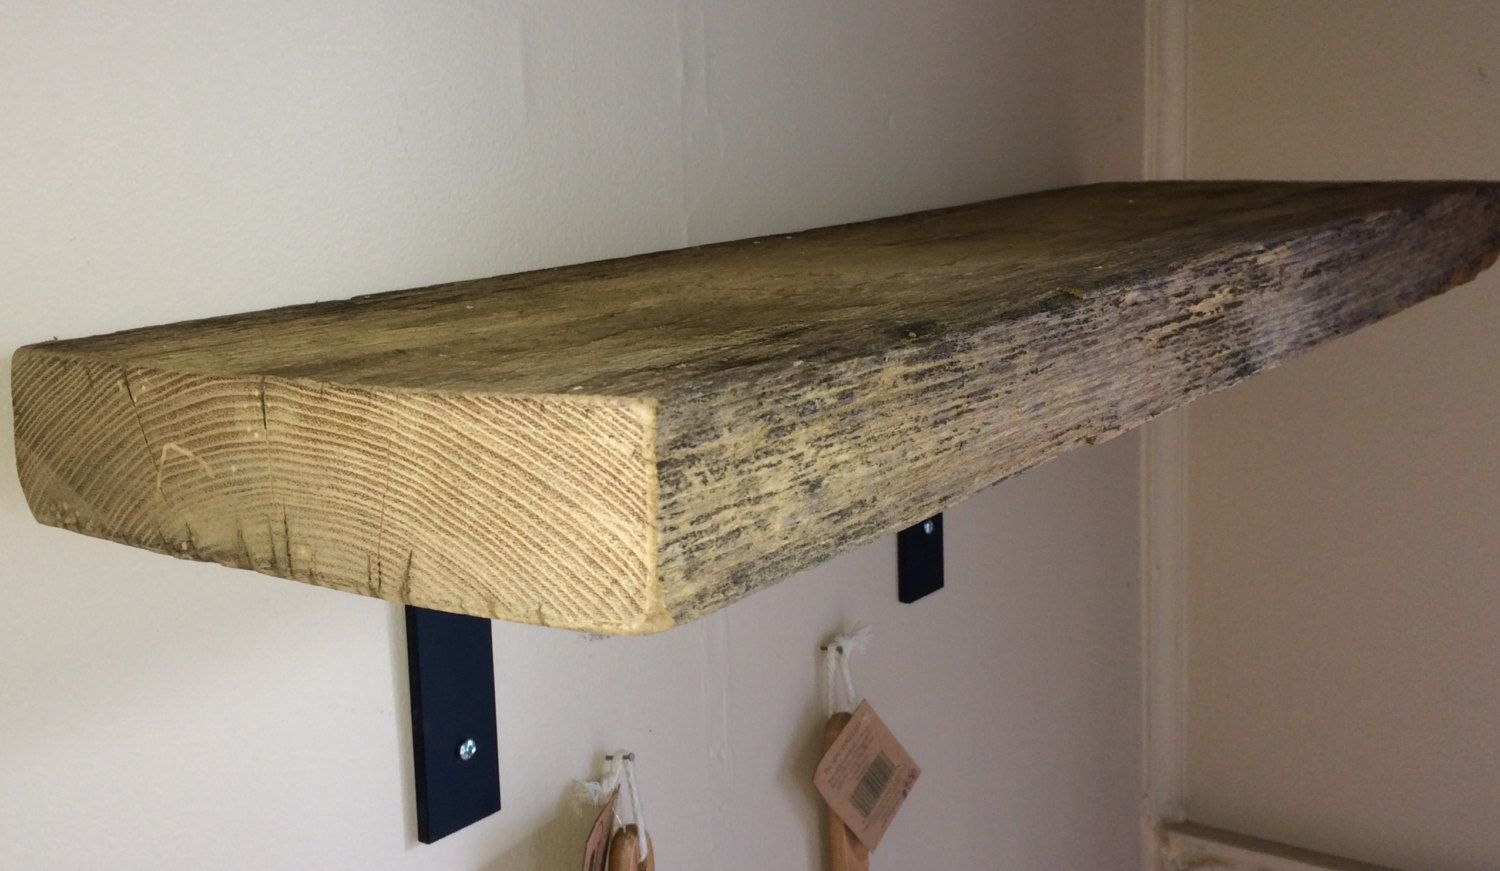 Buy Handmade Barn Wood Shelf Reclaimed With Industrial Metal L Brackets Made To Order From Blowing Rock WoodWorks